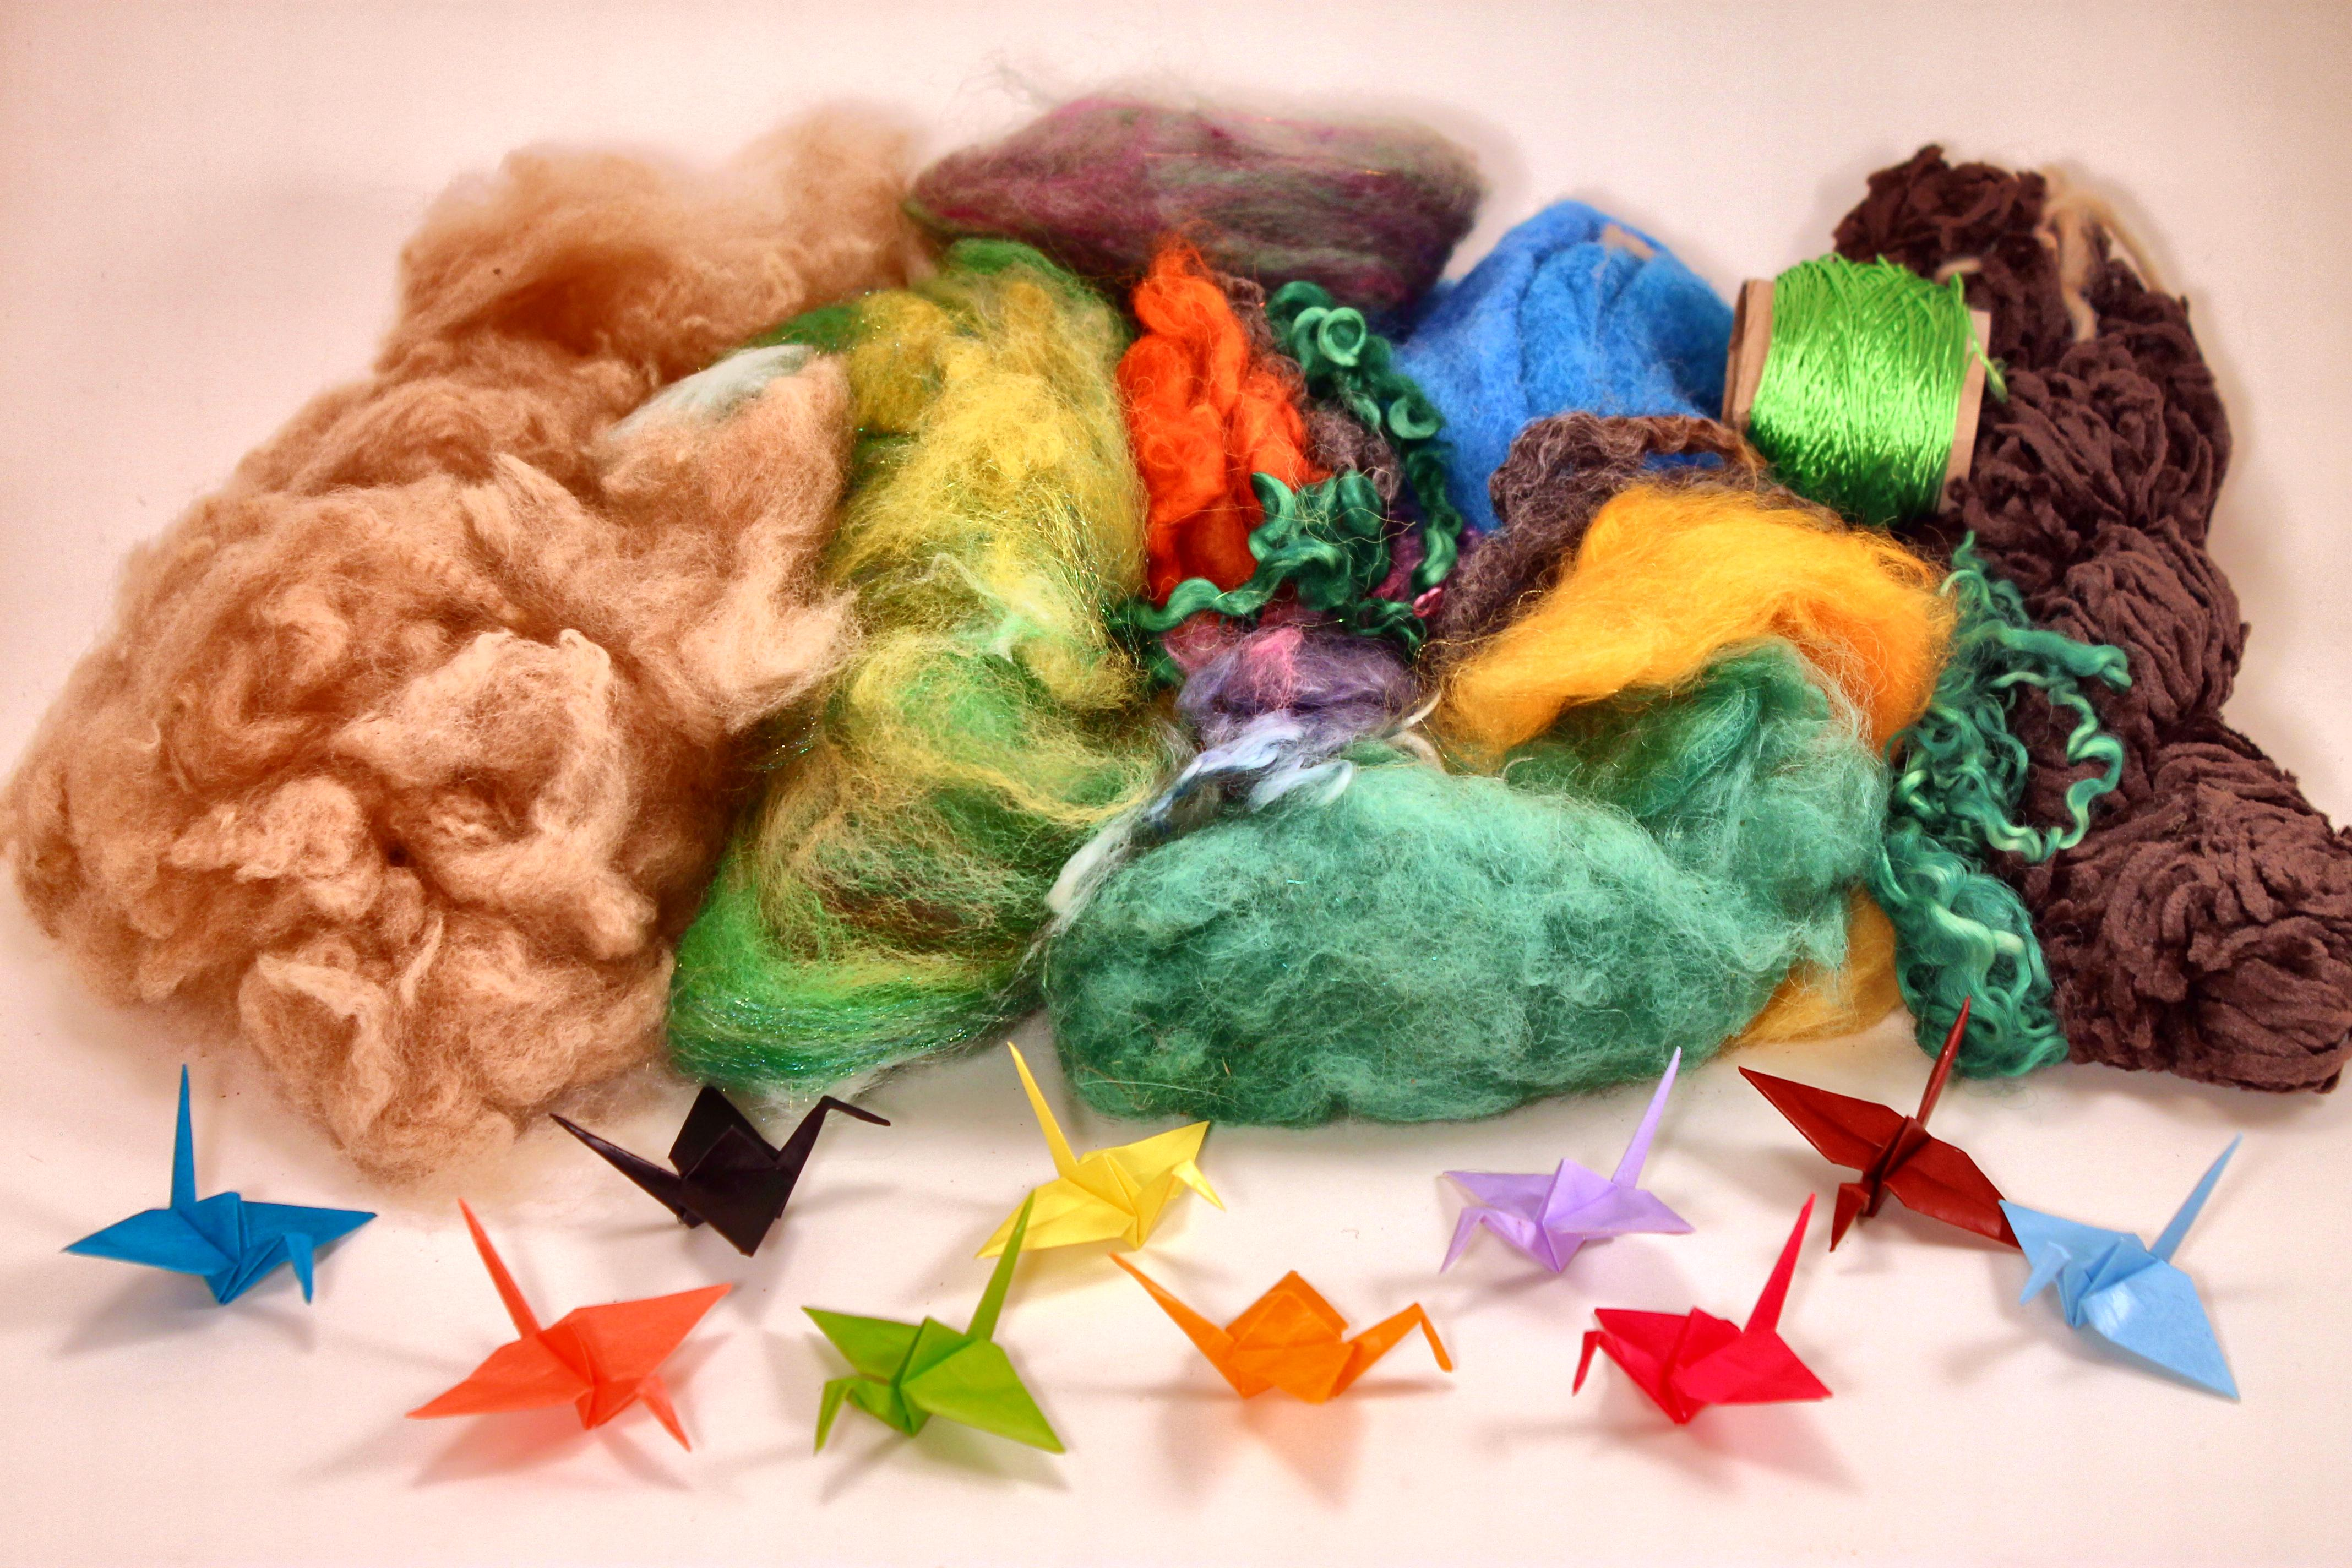 Secret stash round 2 the unveiling spin artiste handspun yarn publishers notes prepare yourself to be astounded by the entries for the second round of the secret stash game for tonight we have the unveiling of the solutioingenieria Gallery